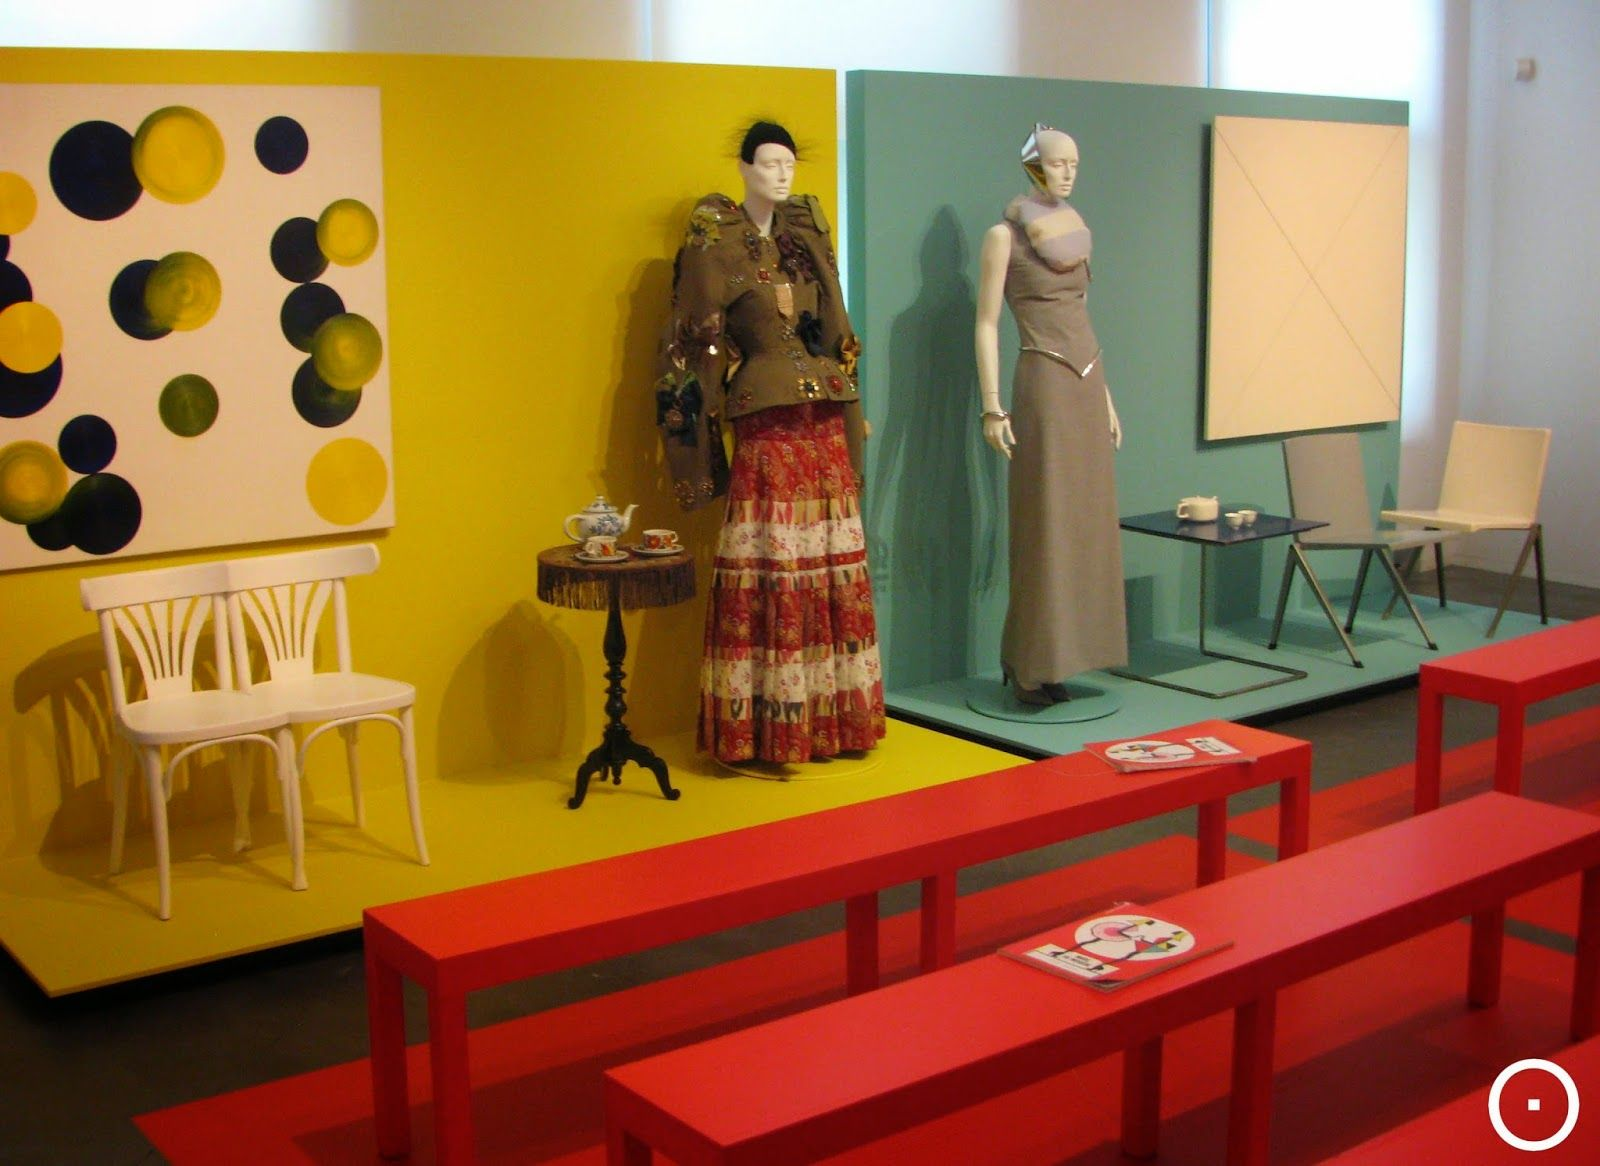 eyeAm viewOnRetail (With images) | Scenic design ...